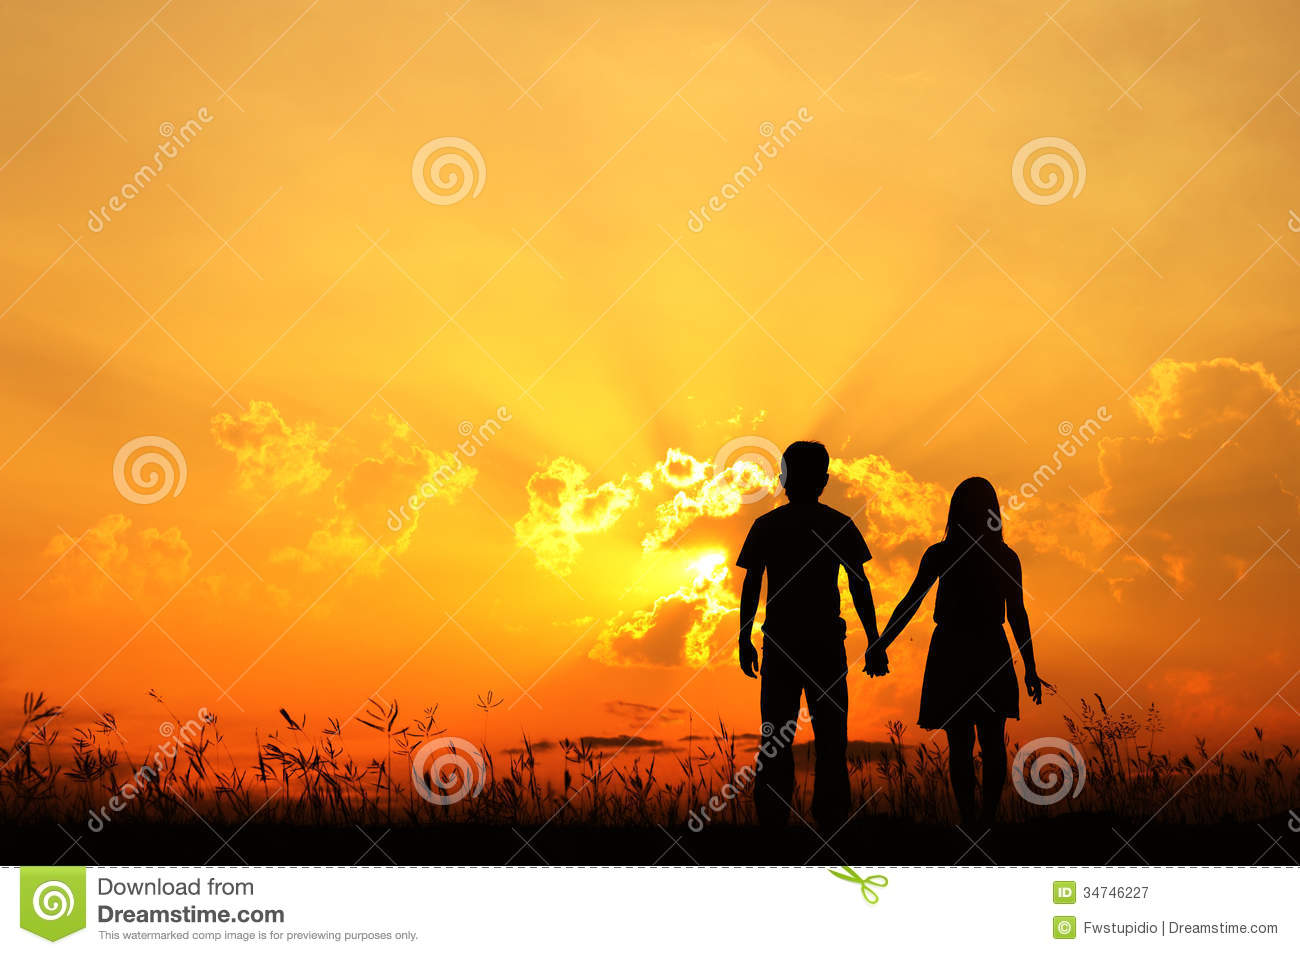 Valentine Man And Woman Love Silhouette In Sunset Royalty Free Stock Photography